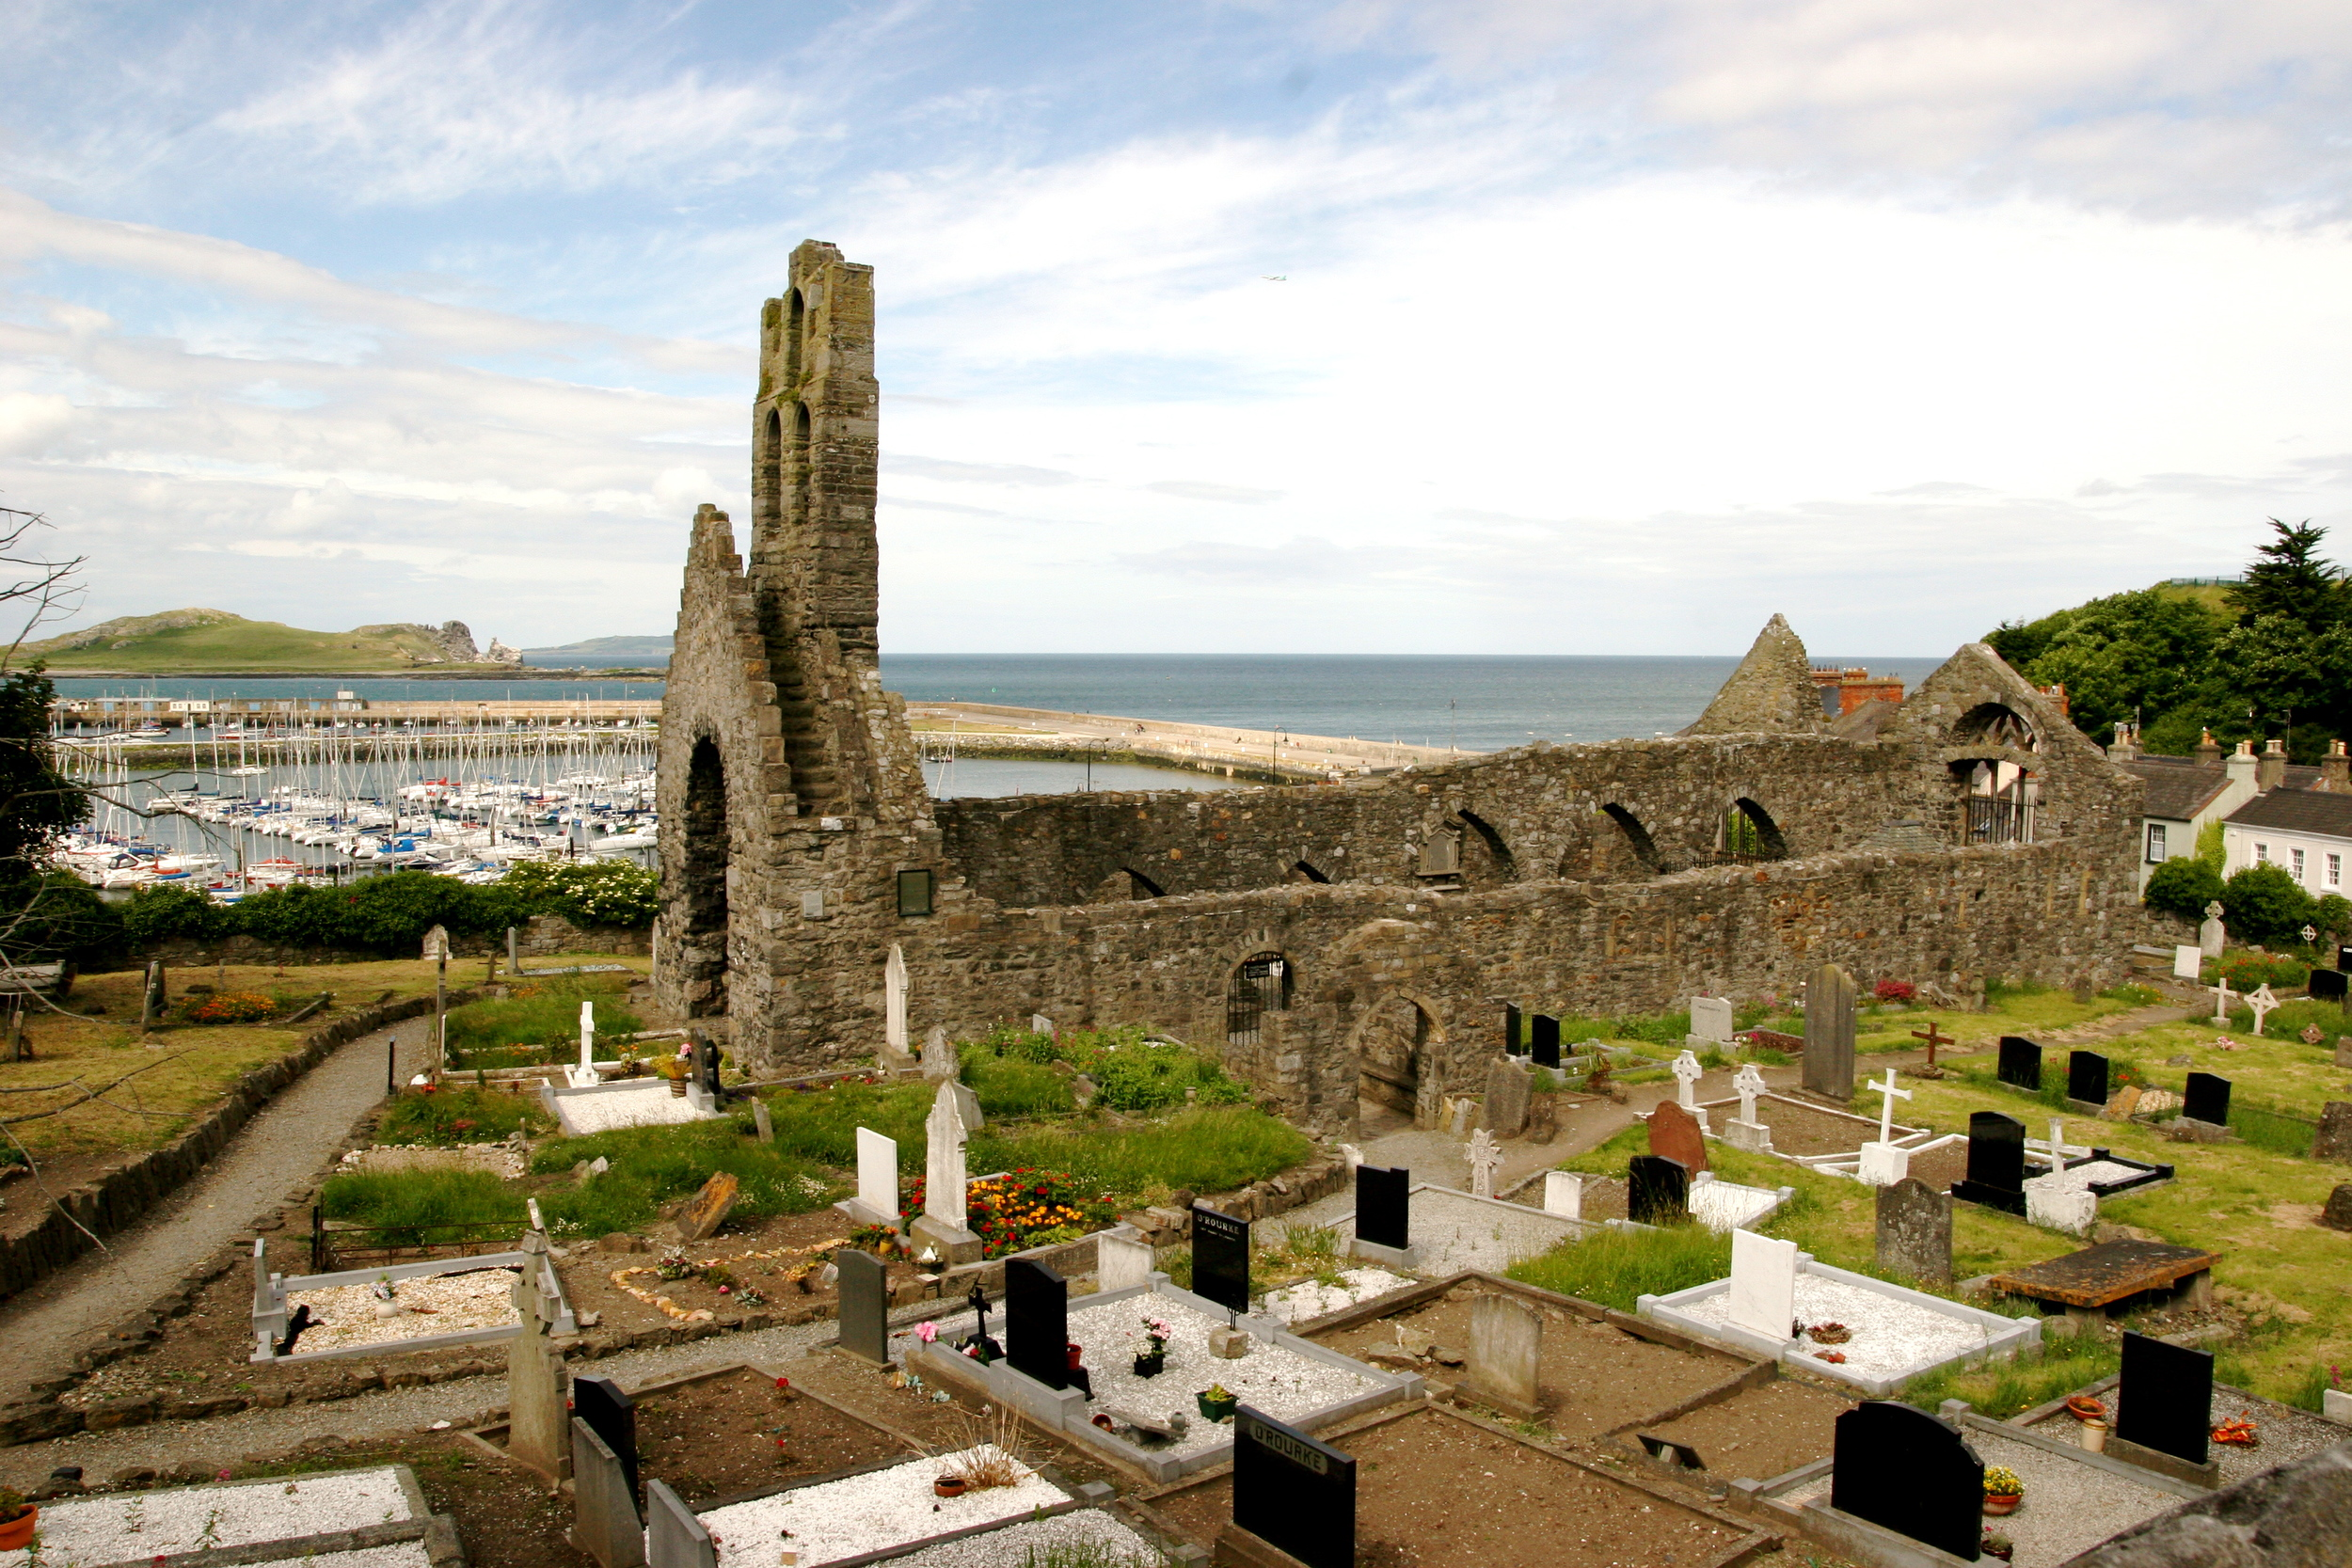 St. Mary's Cemetery in Howth, Ireland